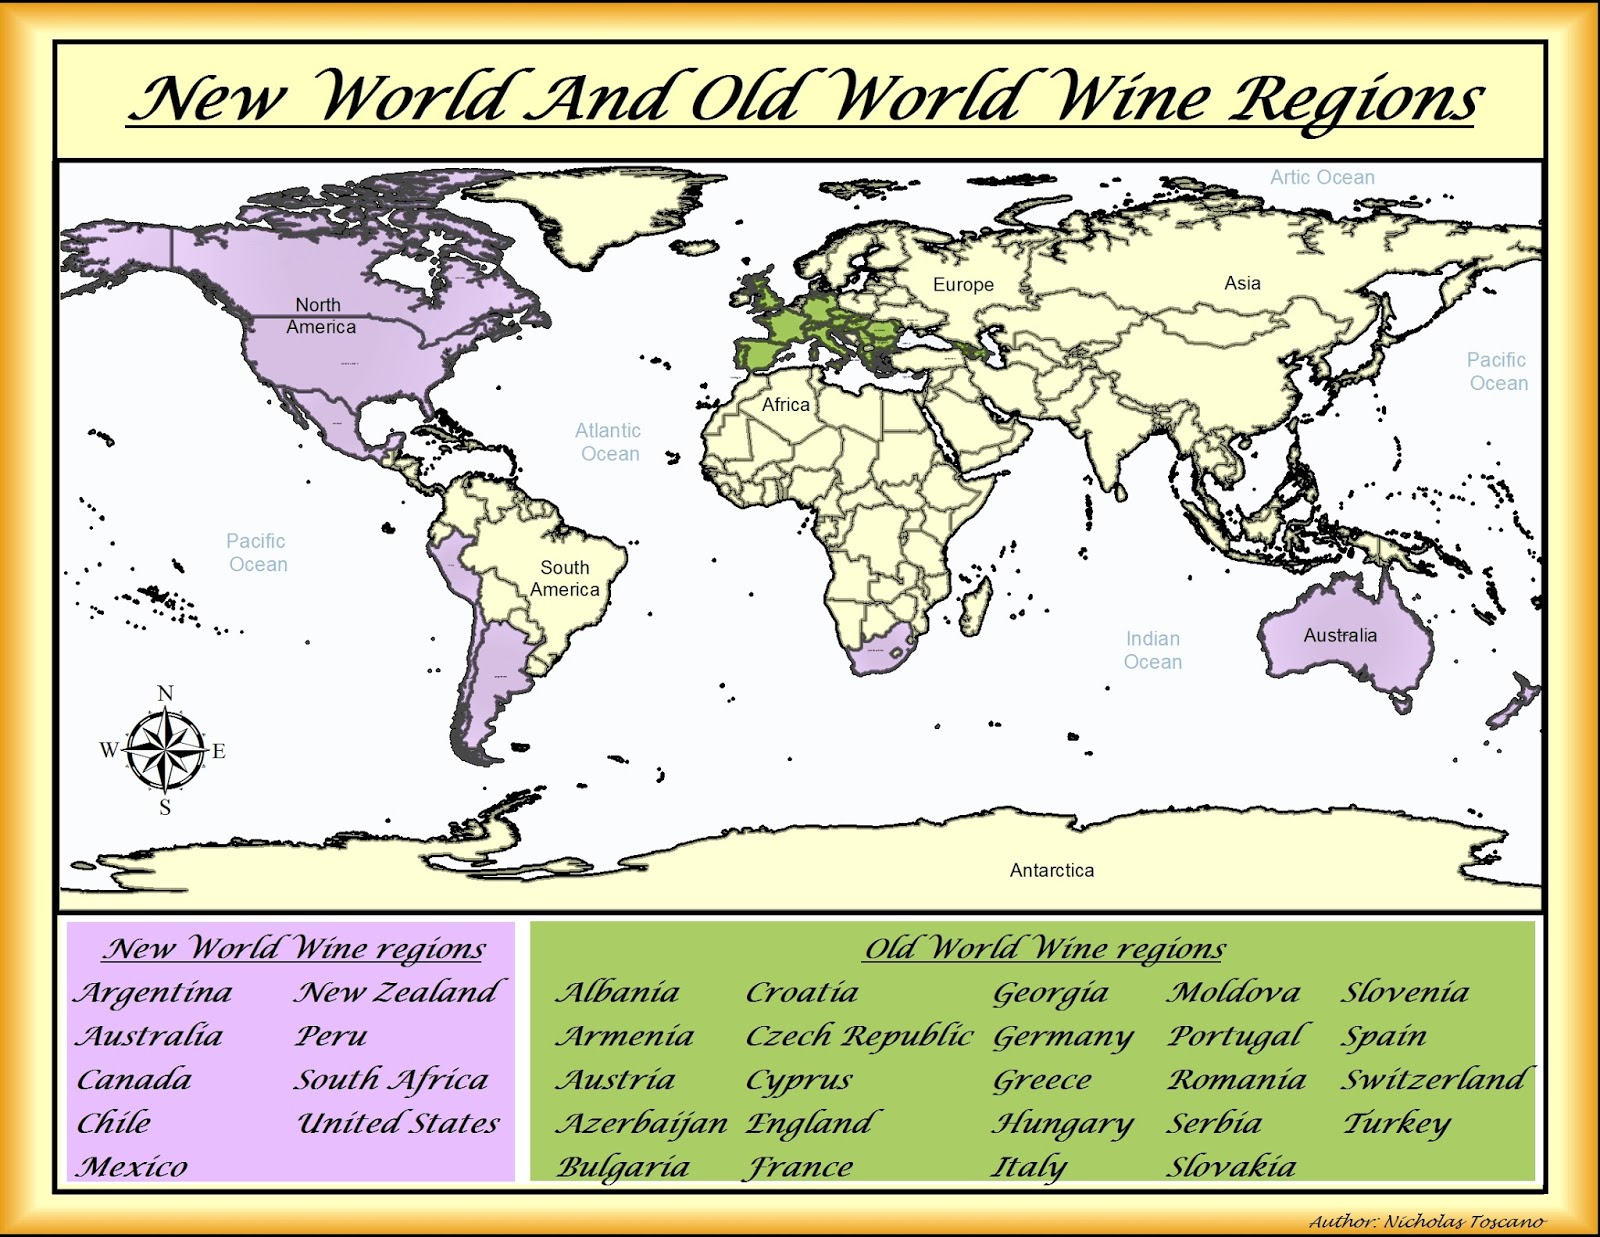 My Wine Journal A Map Of New And Old World Wine Regions